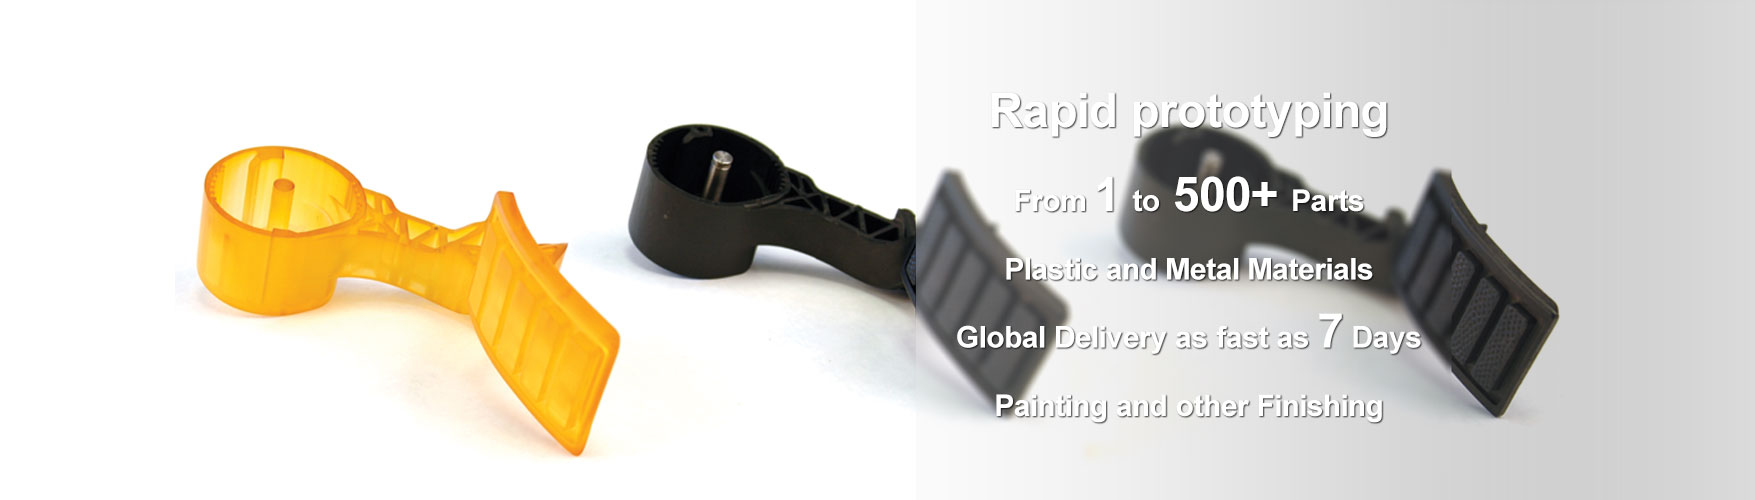 Rapid prototyping From 1 to 500+ Parts Plastic and Metal Materials Global Delivery as fast as 7 Days